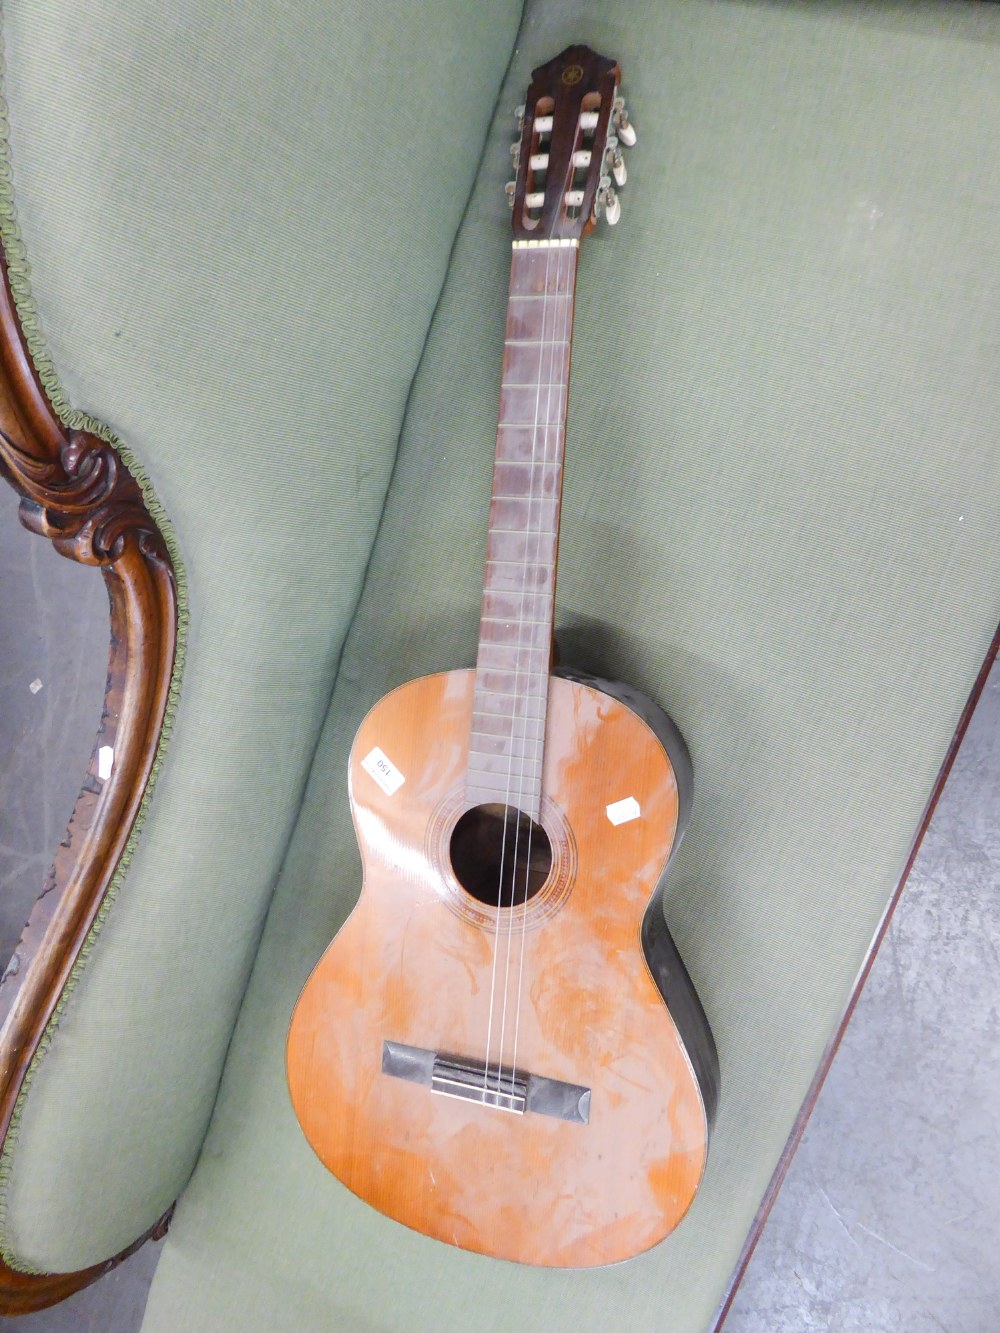 Lot 150 - A YAMAHA SIX STRING SPANISH STYLE GUITAR